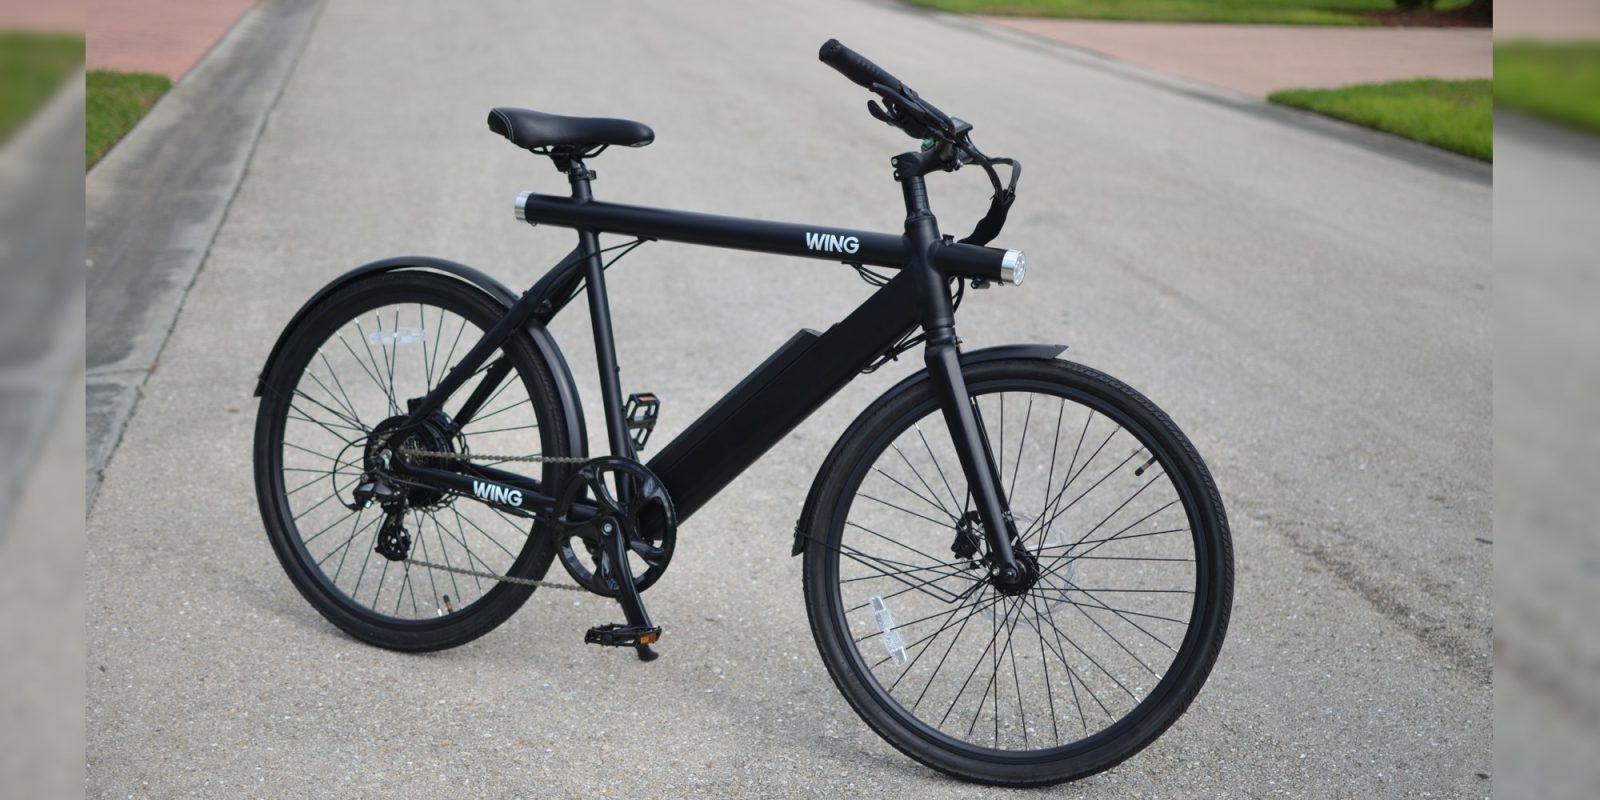 Wing Freedom Electric Bike Review A Stylish And High Performing